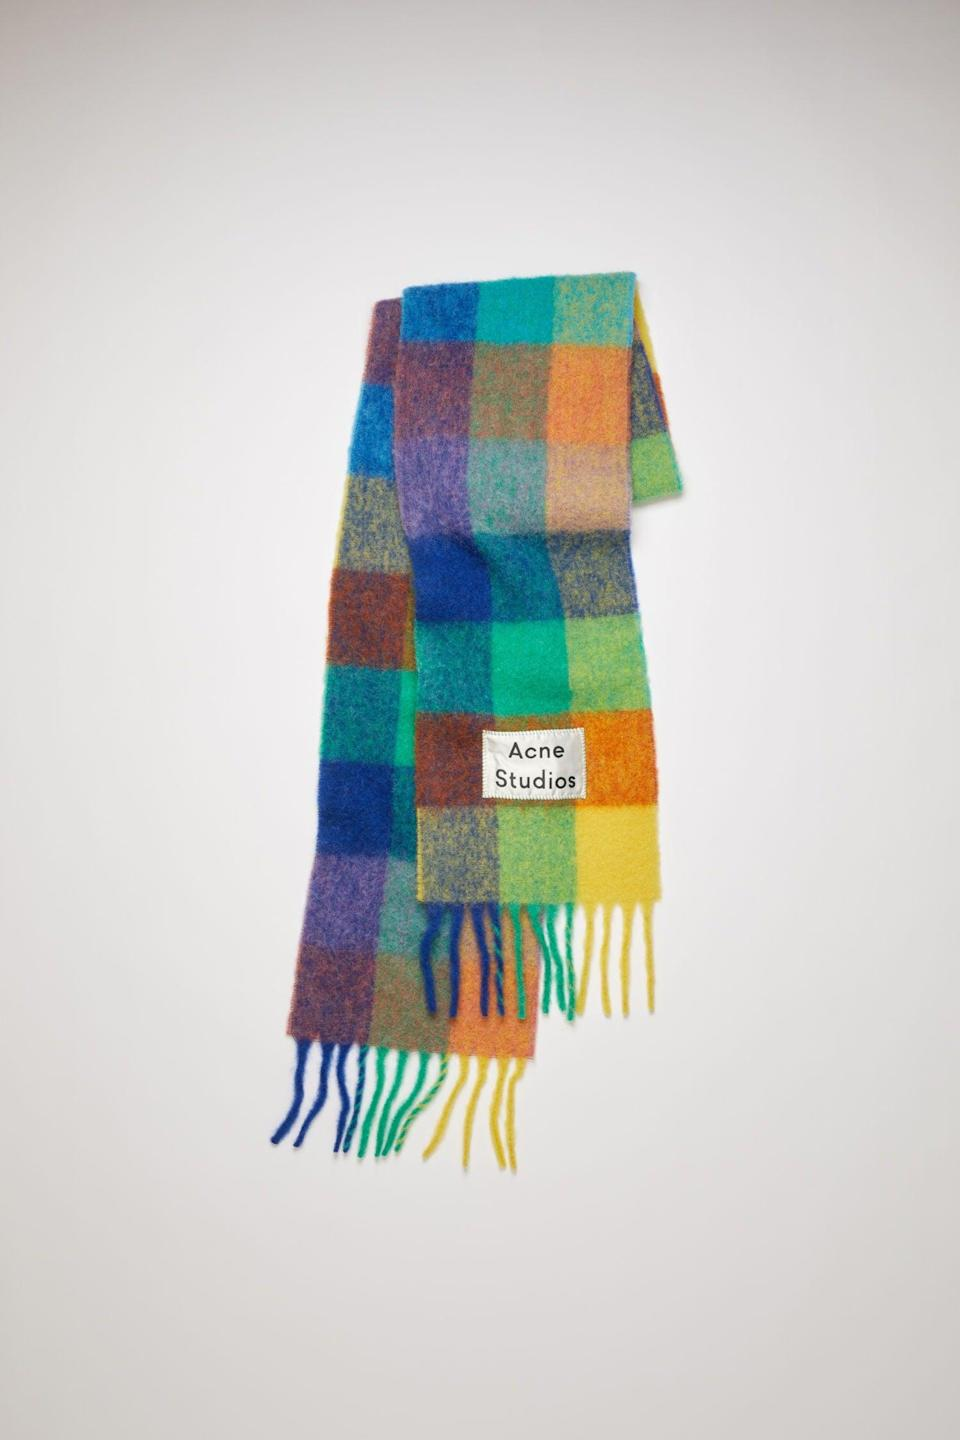 "It's probably super basic of me but I have wanted an Acne Studios scarf forever. Every person I have ever seen wearing an Acne scarf looks like they have their shit together, and I just want to be part of their world. In light of this, I'm putting this checkered <em>Elmer</em>-inspired number at the top of my autumn wish list. <br><br><strong>Acne Studios</strong> Multi Check Scarf, $, available at <a href=""https://www.acnestudios.com/uk/en/multi-check-scarf-blue-orange-green/CA0023-BOA.html"" rel=""nofollow noopener"" target=""_blank"" data-ylk=""slk:Acne Studios"" class=""link rapid-noclick-resp"">Acne Studios</a>"